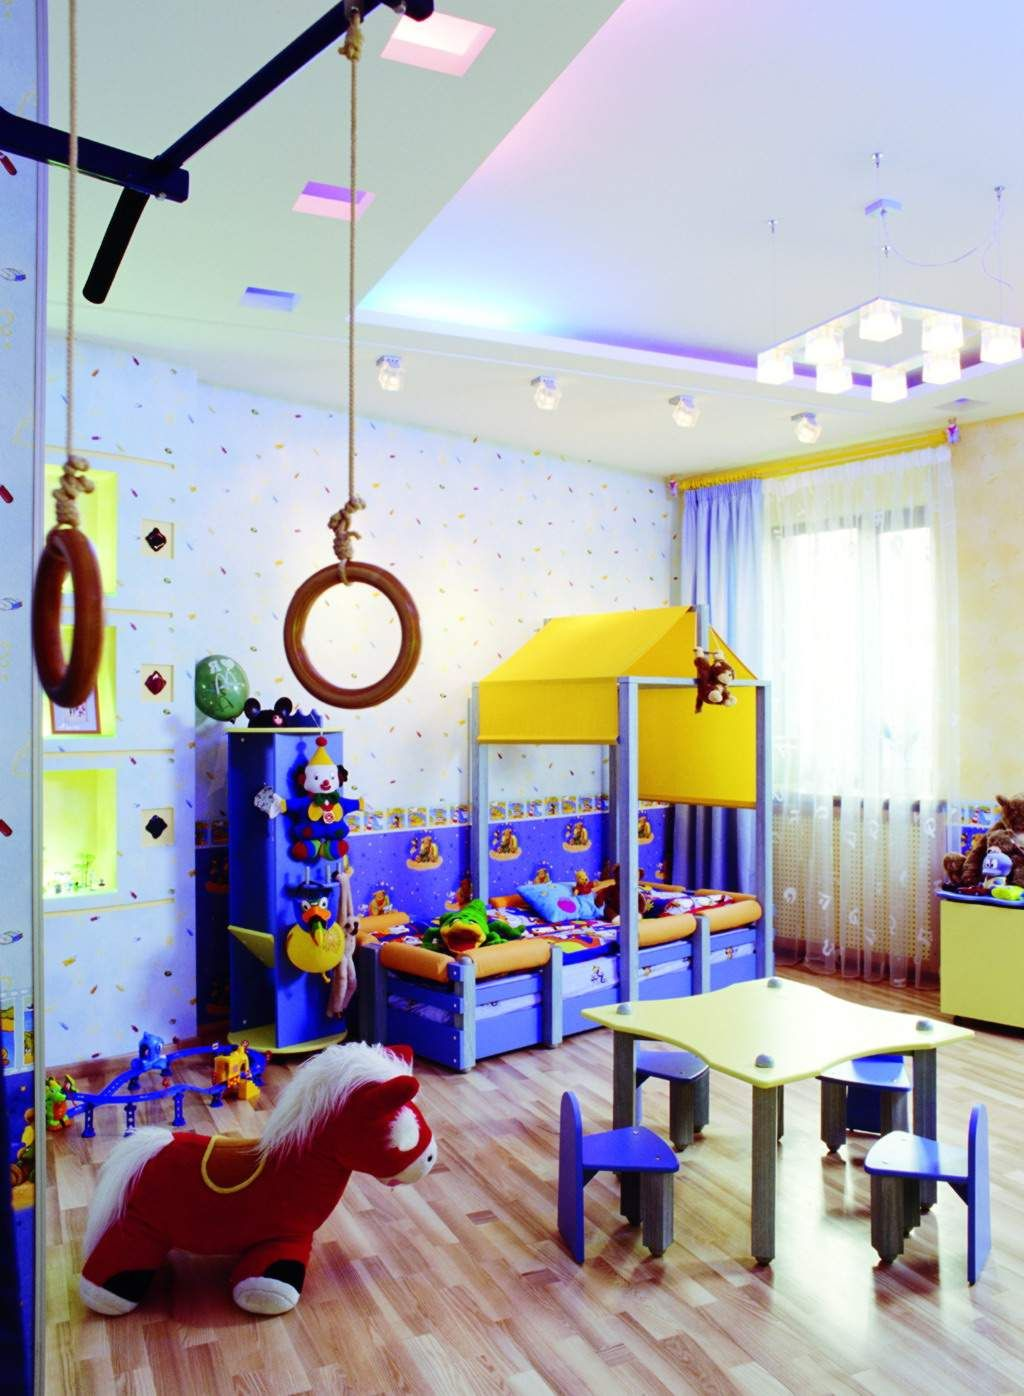 Kids bedroom kids room interior design with play and learn for Children bedroom designs girls